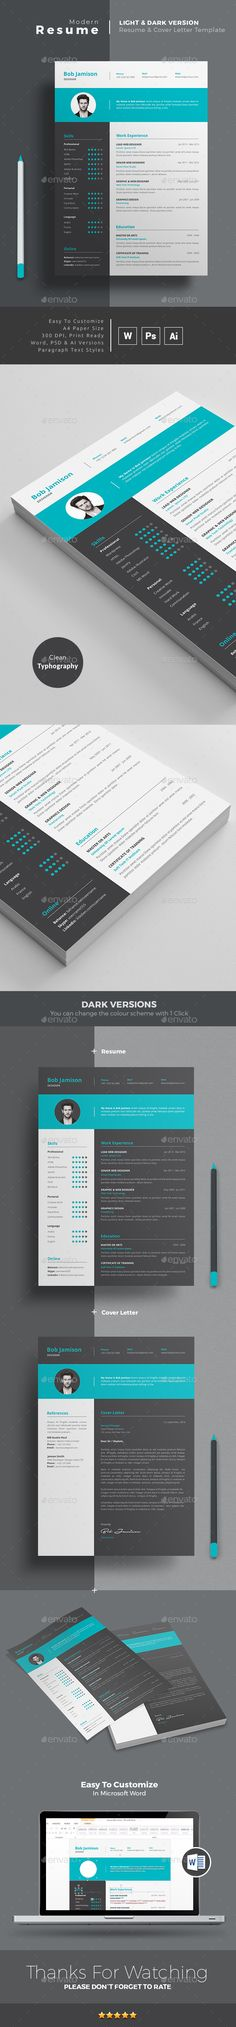 MS WORD CV Template   Resume Template + Cover Letter   PSD + AI Versions with color options. Download and Edit http://graphicriver.net/item/resume/14779867?ref=themedevisers